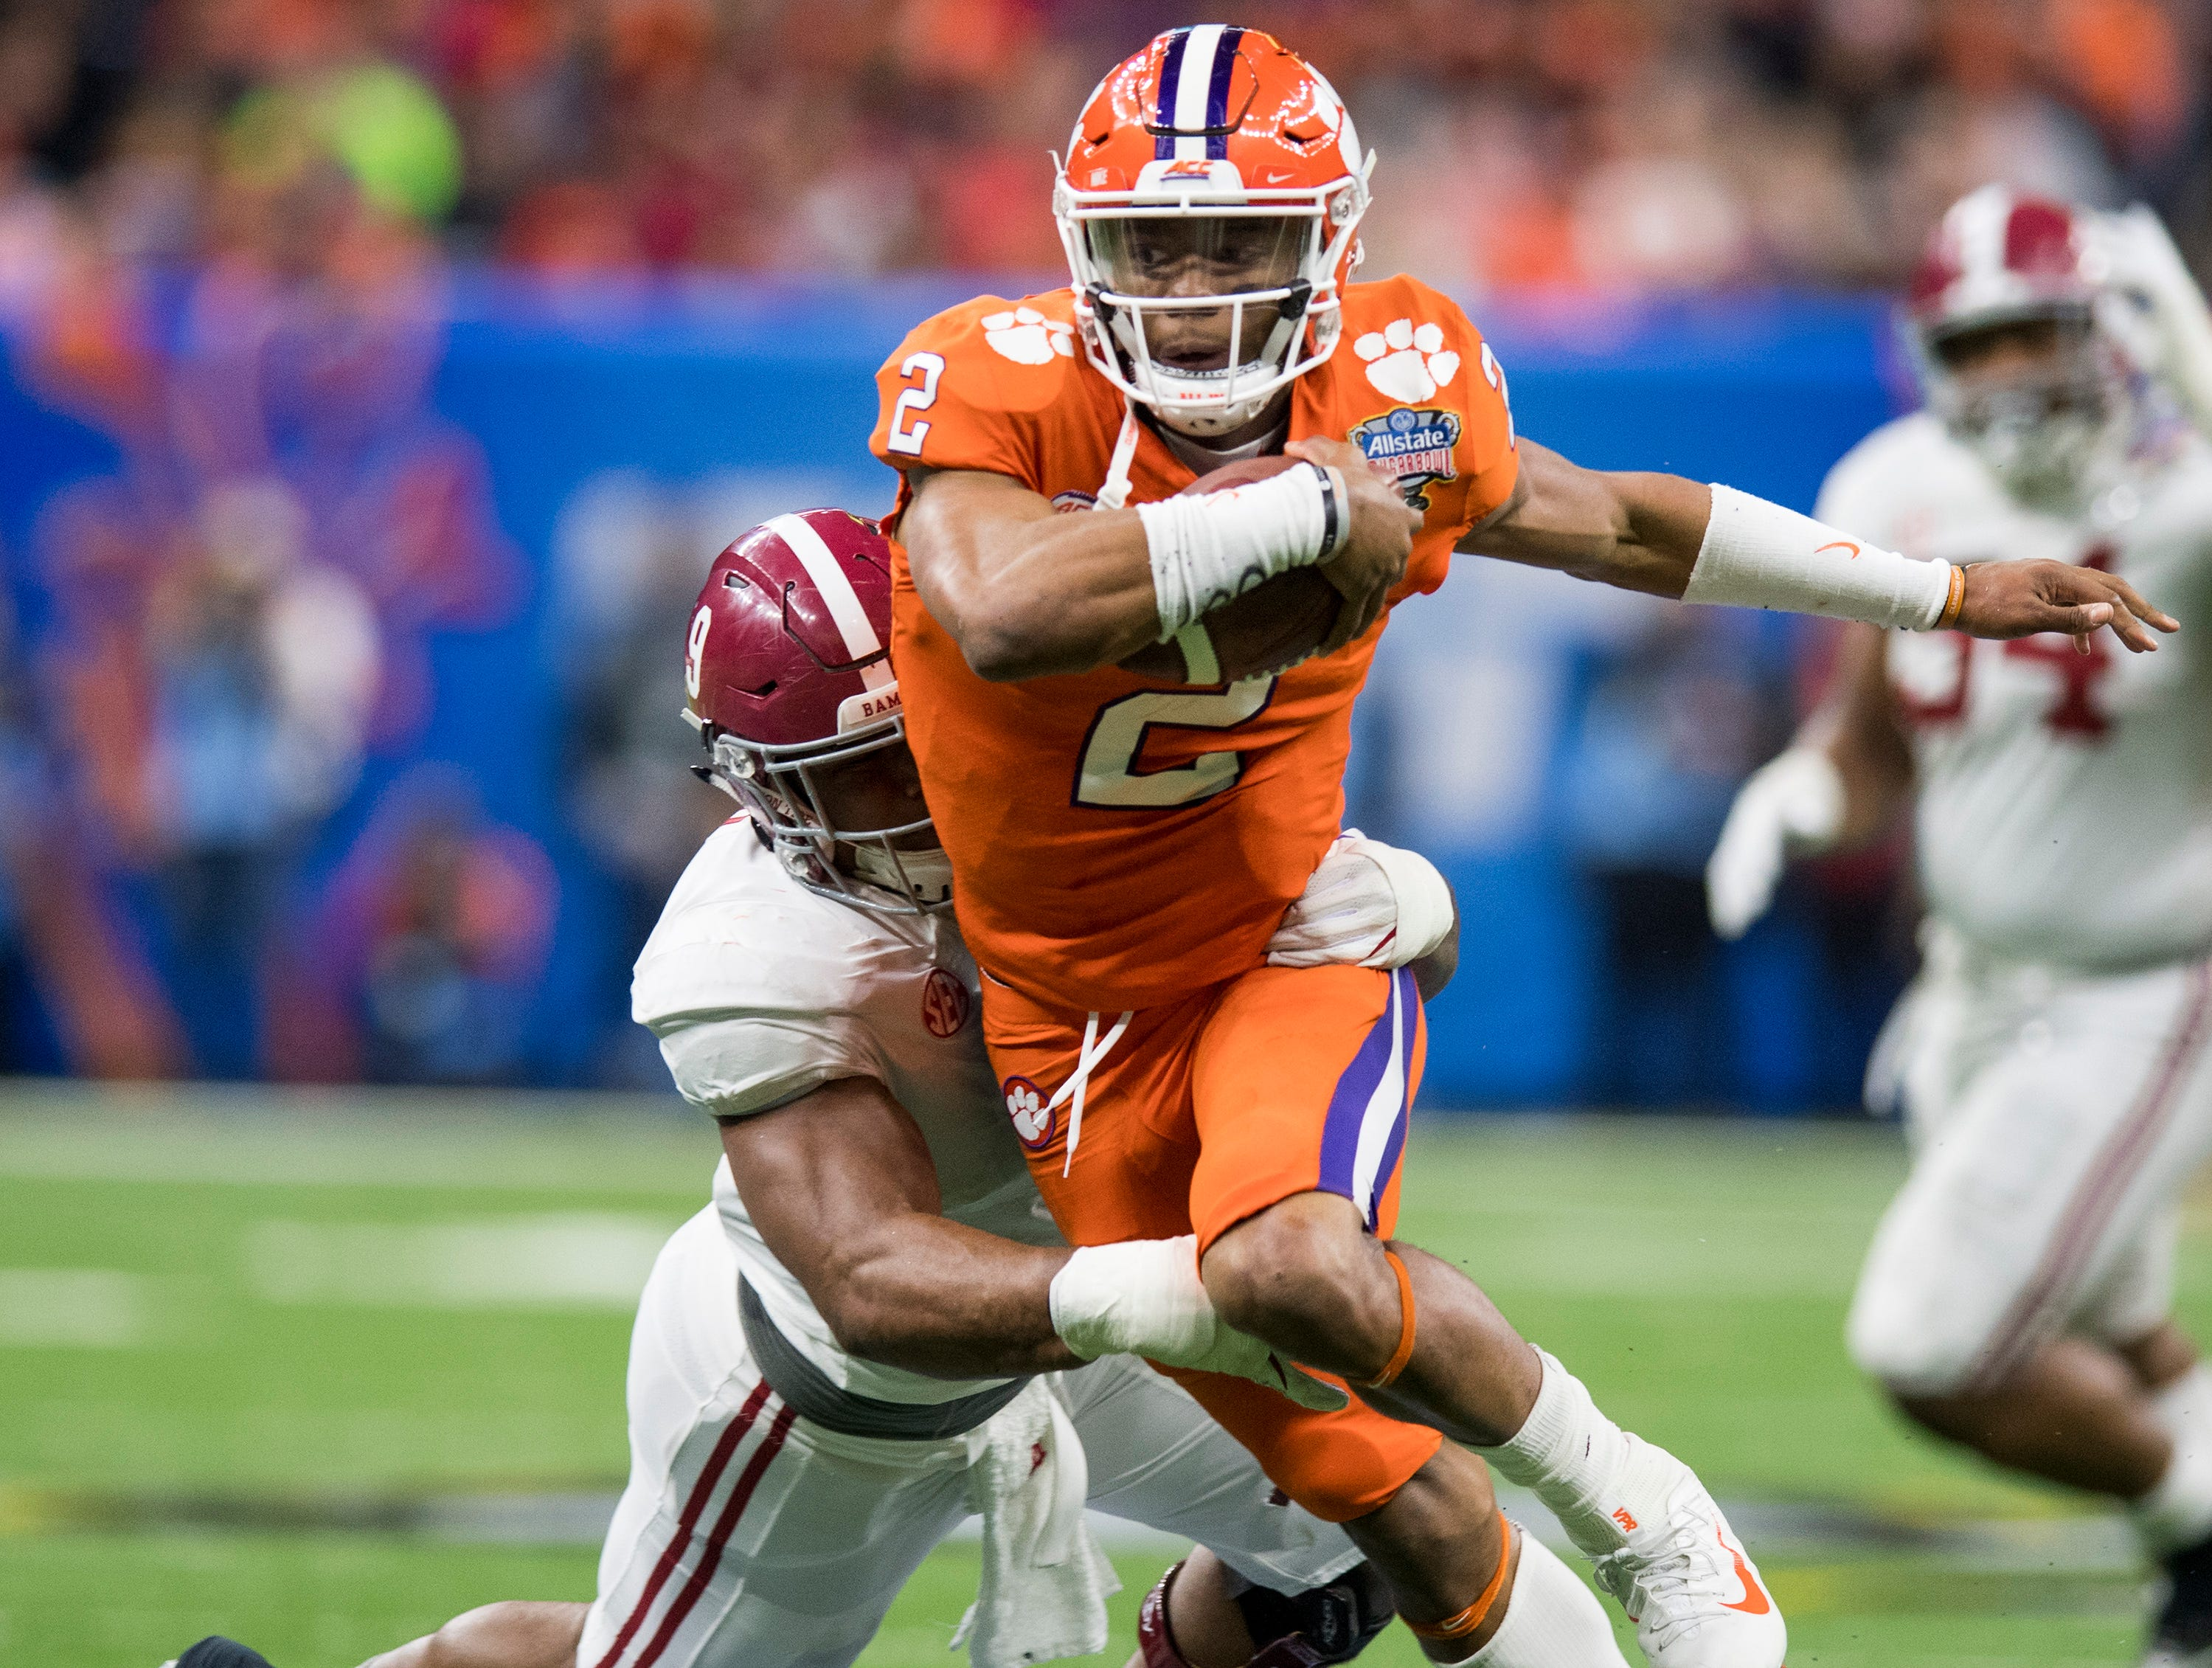 Alabama defensive lineman DaÕShawn Hand (9) sacks Clemson quarterback Kelly Bryant (2) in the Sugar Bowl at the Superdome in New Orleans, La. on Monday January 1, 2018.